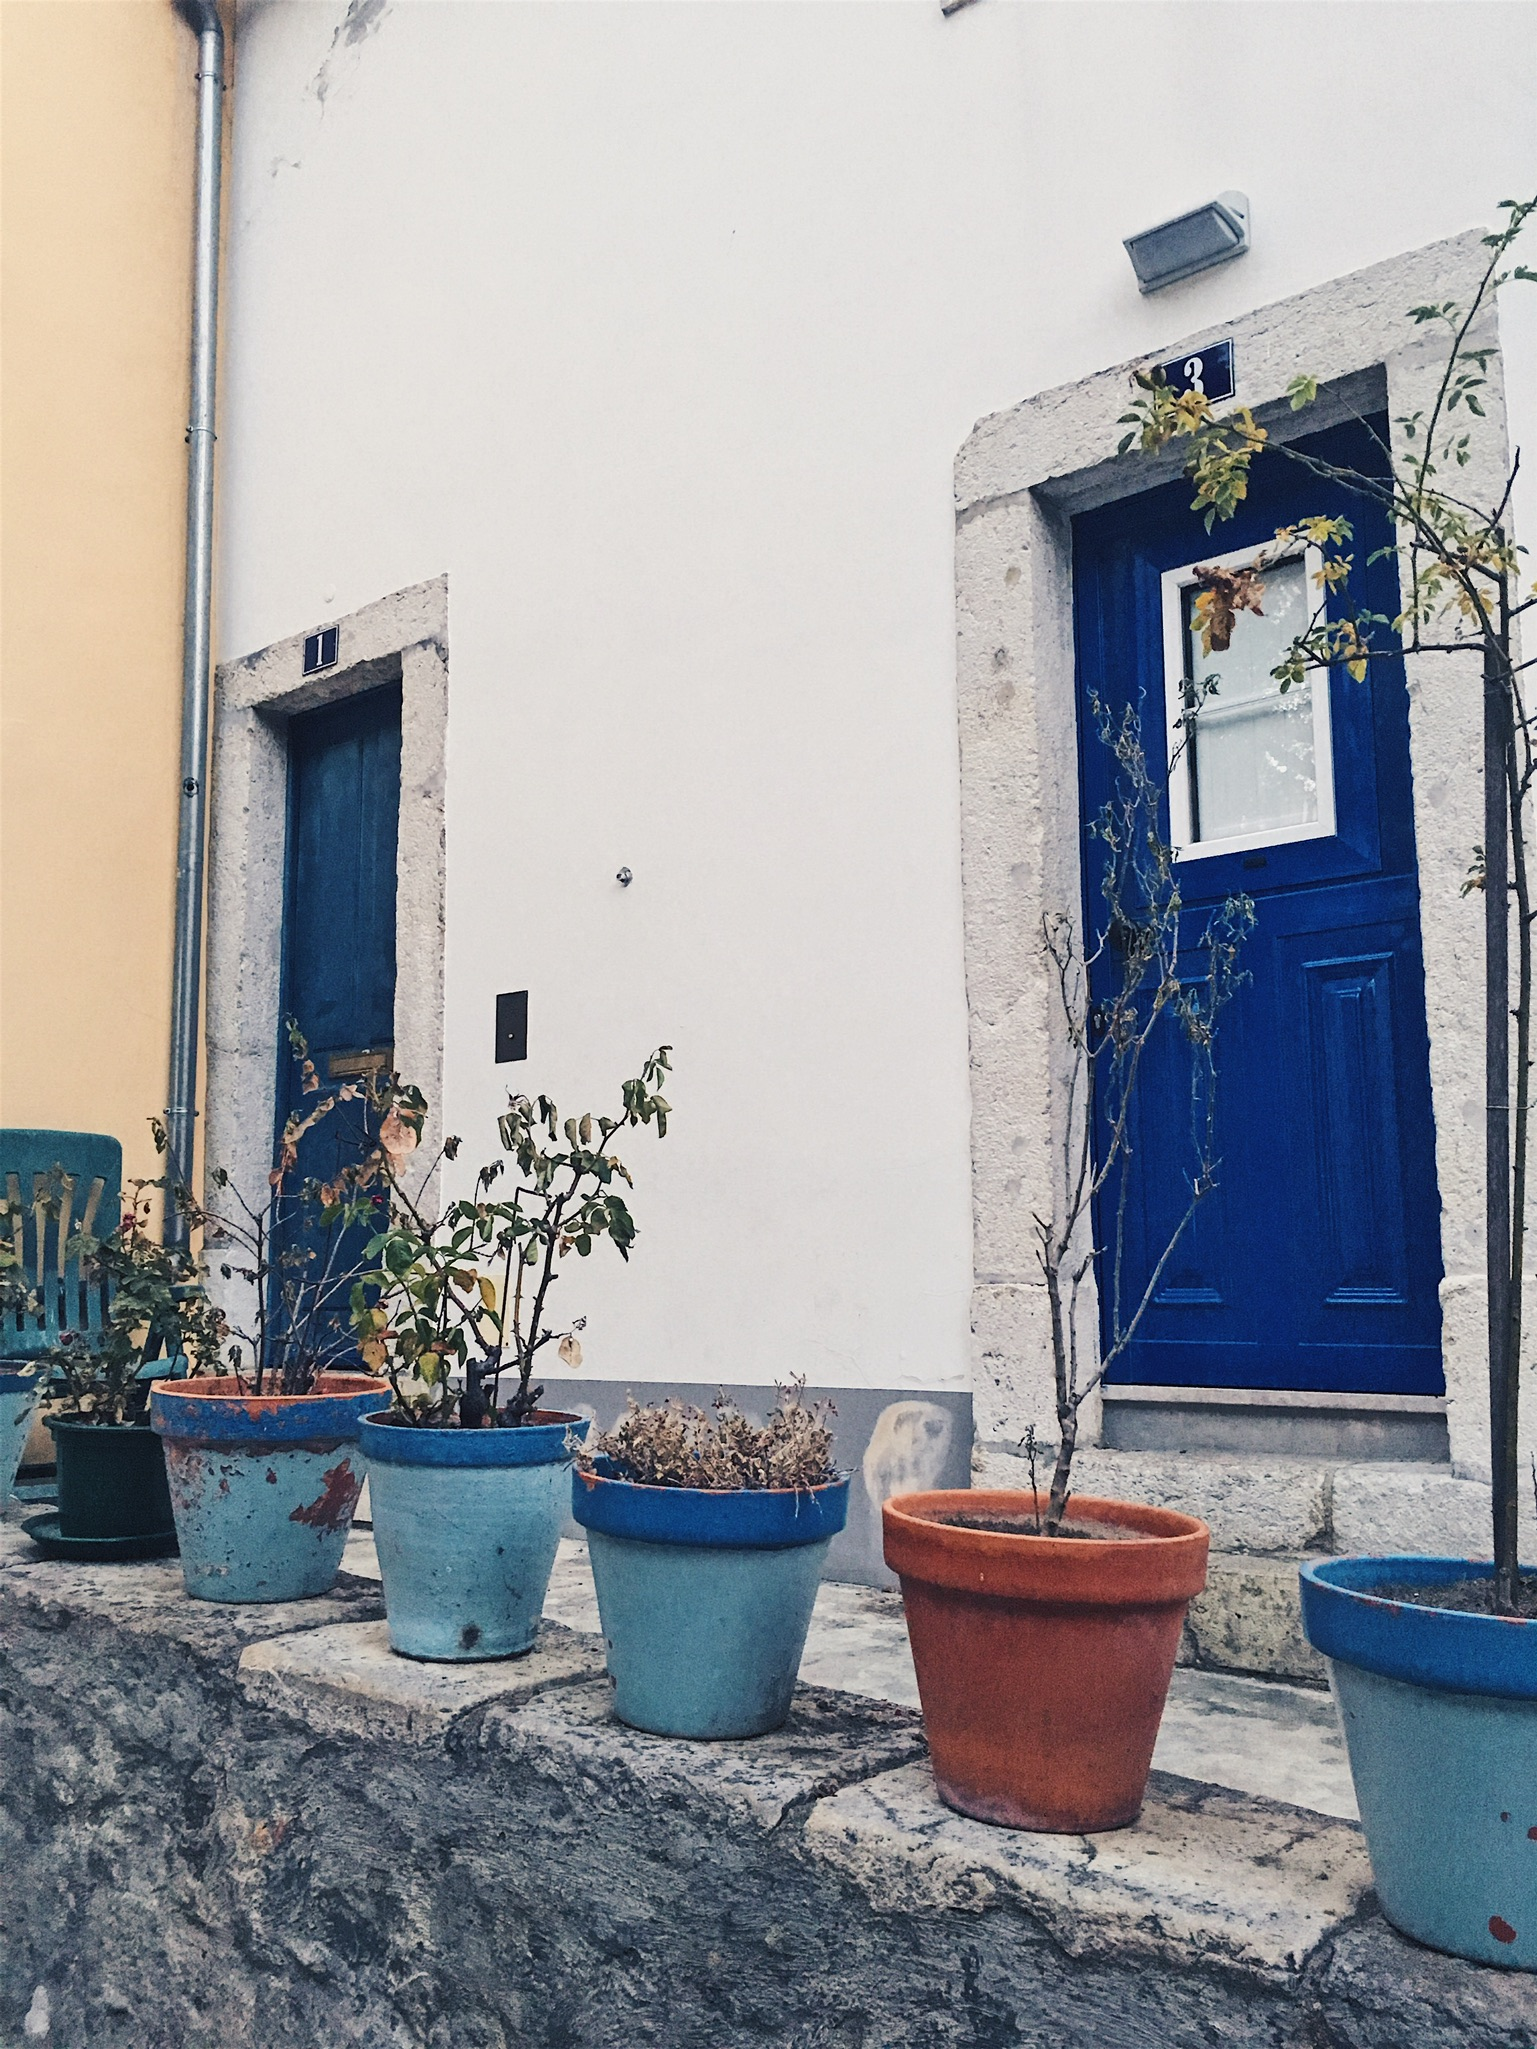 Pretty color palette of a building and potted plants just across the entrance to the castelo